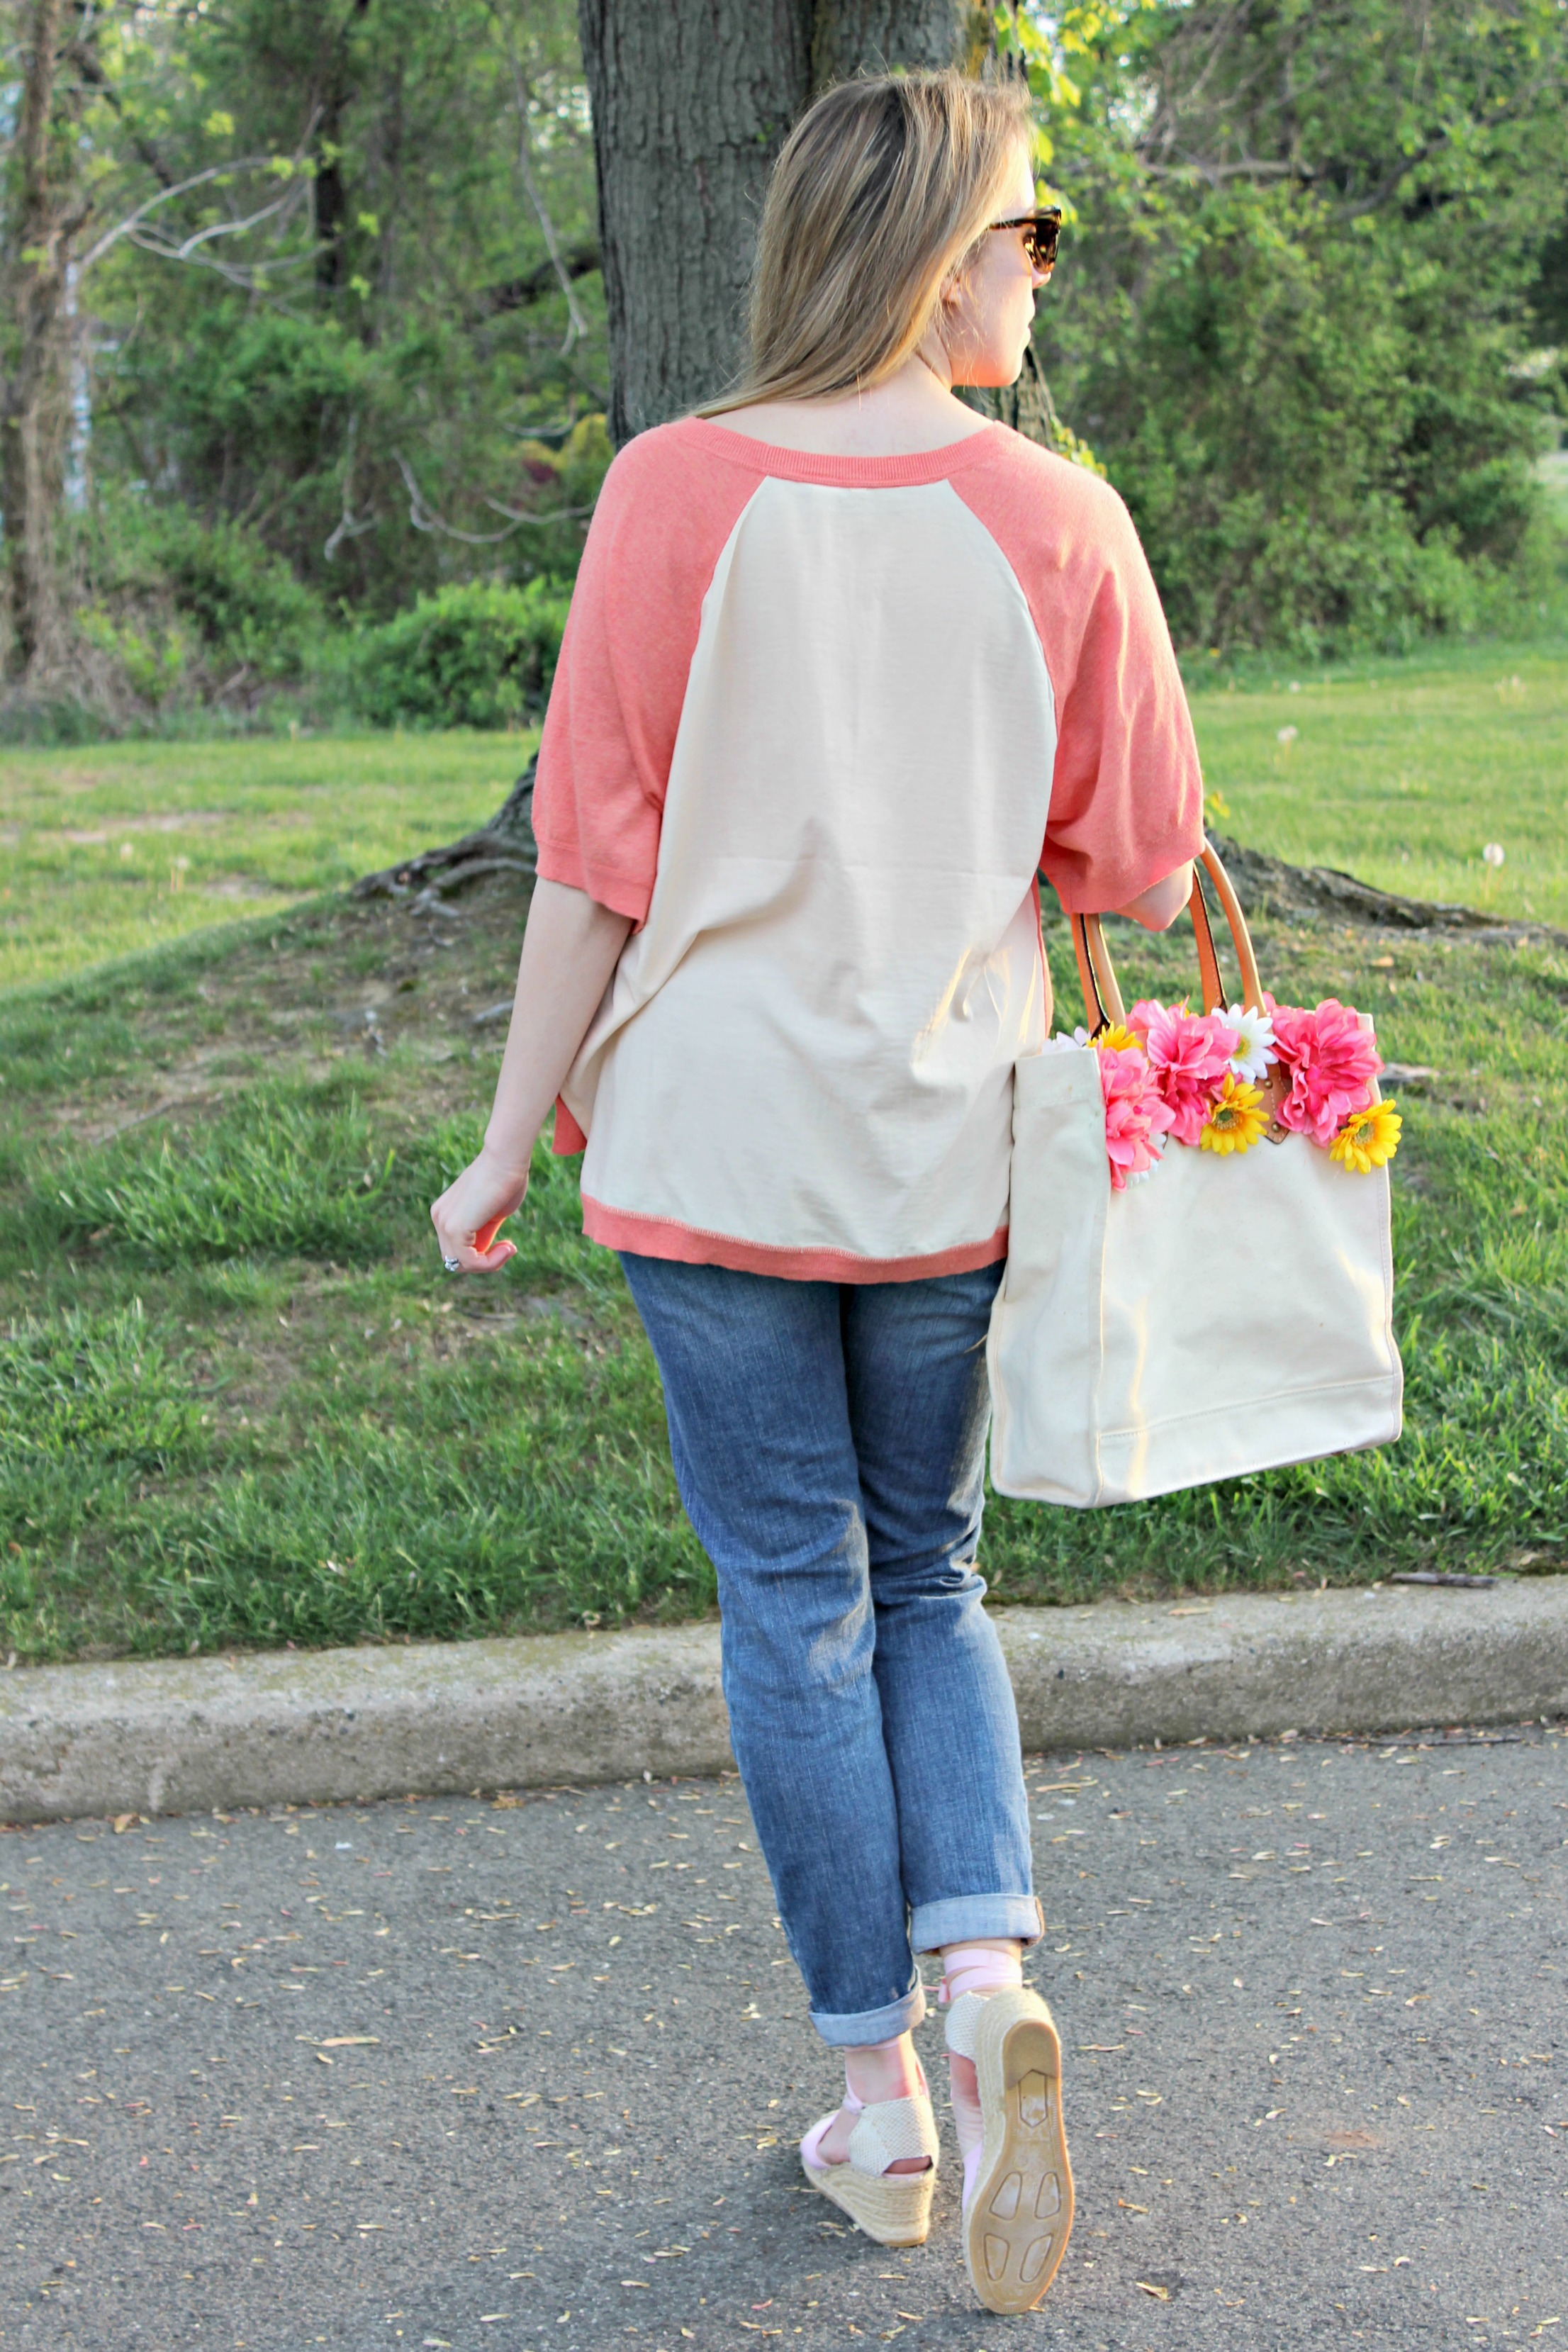 Wearing: Sunrise Colors and Springtime Vibes